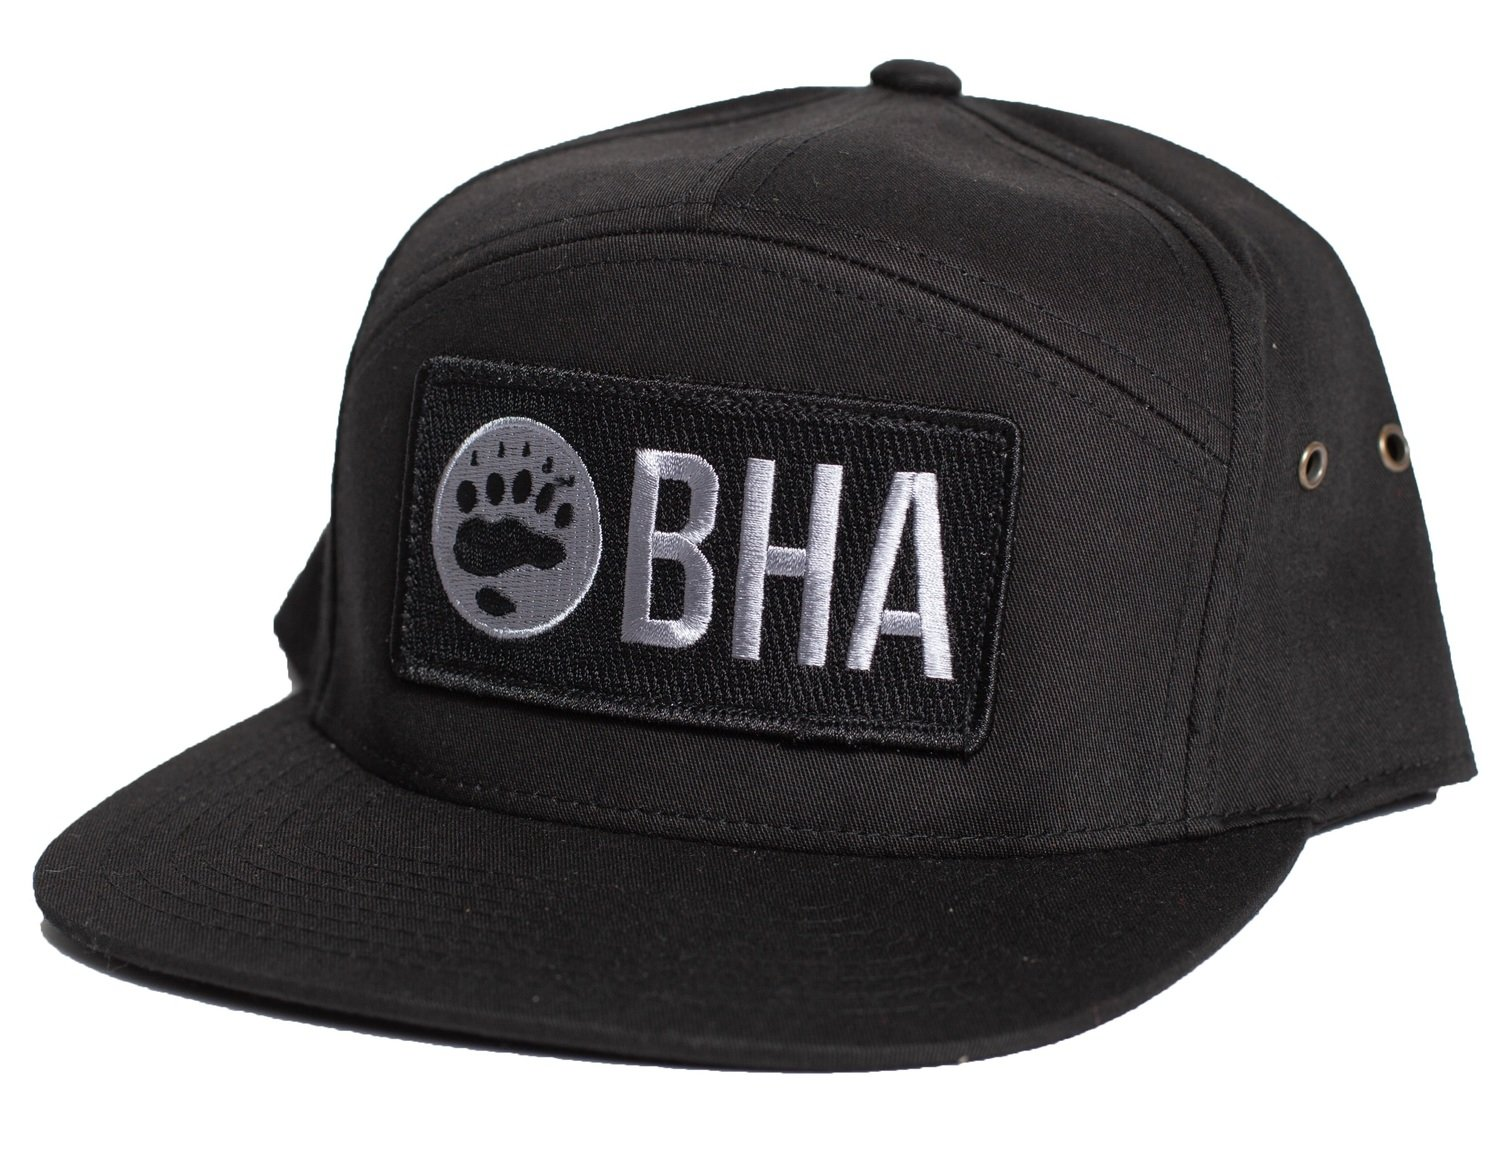 CLOSEOUT-BHA Patch 7 Panel